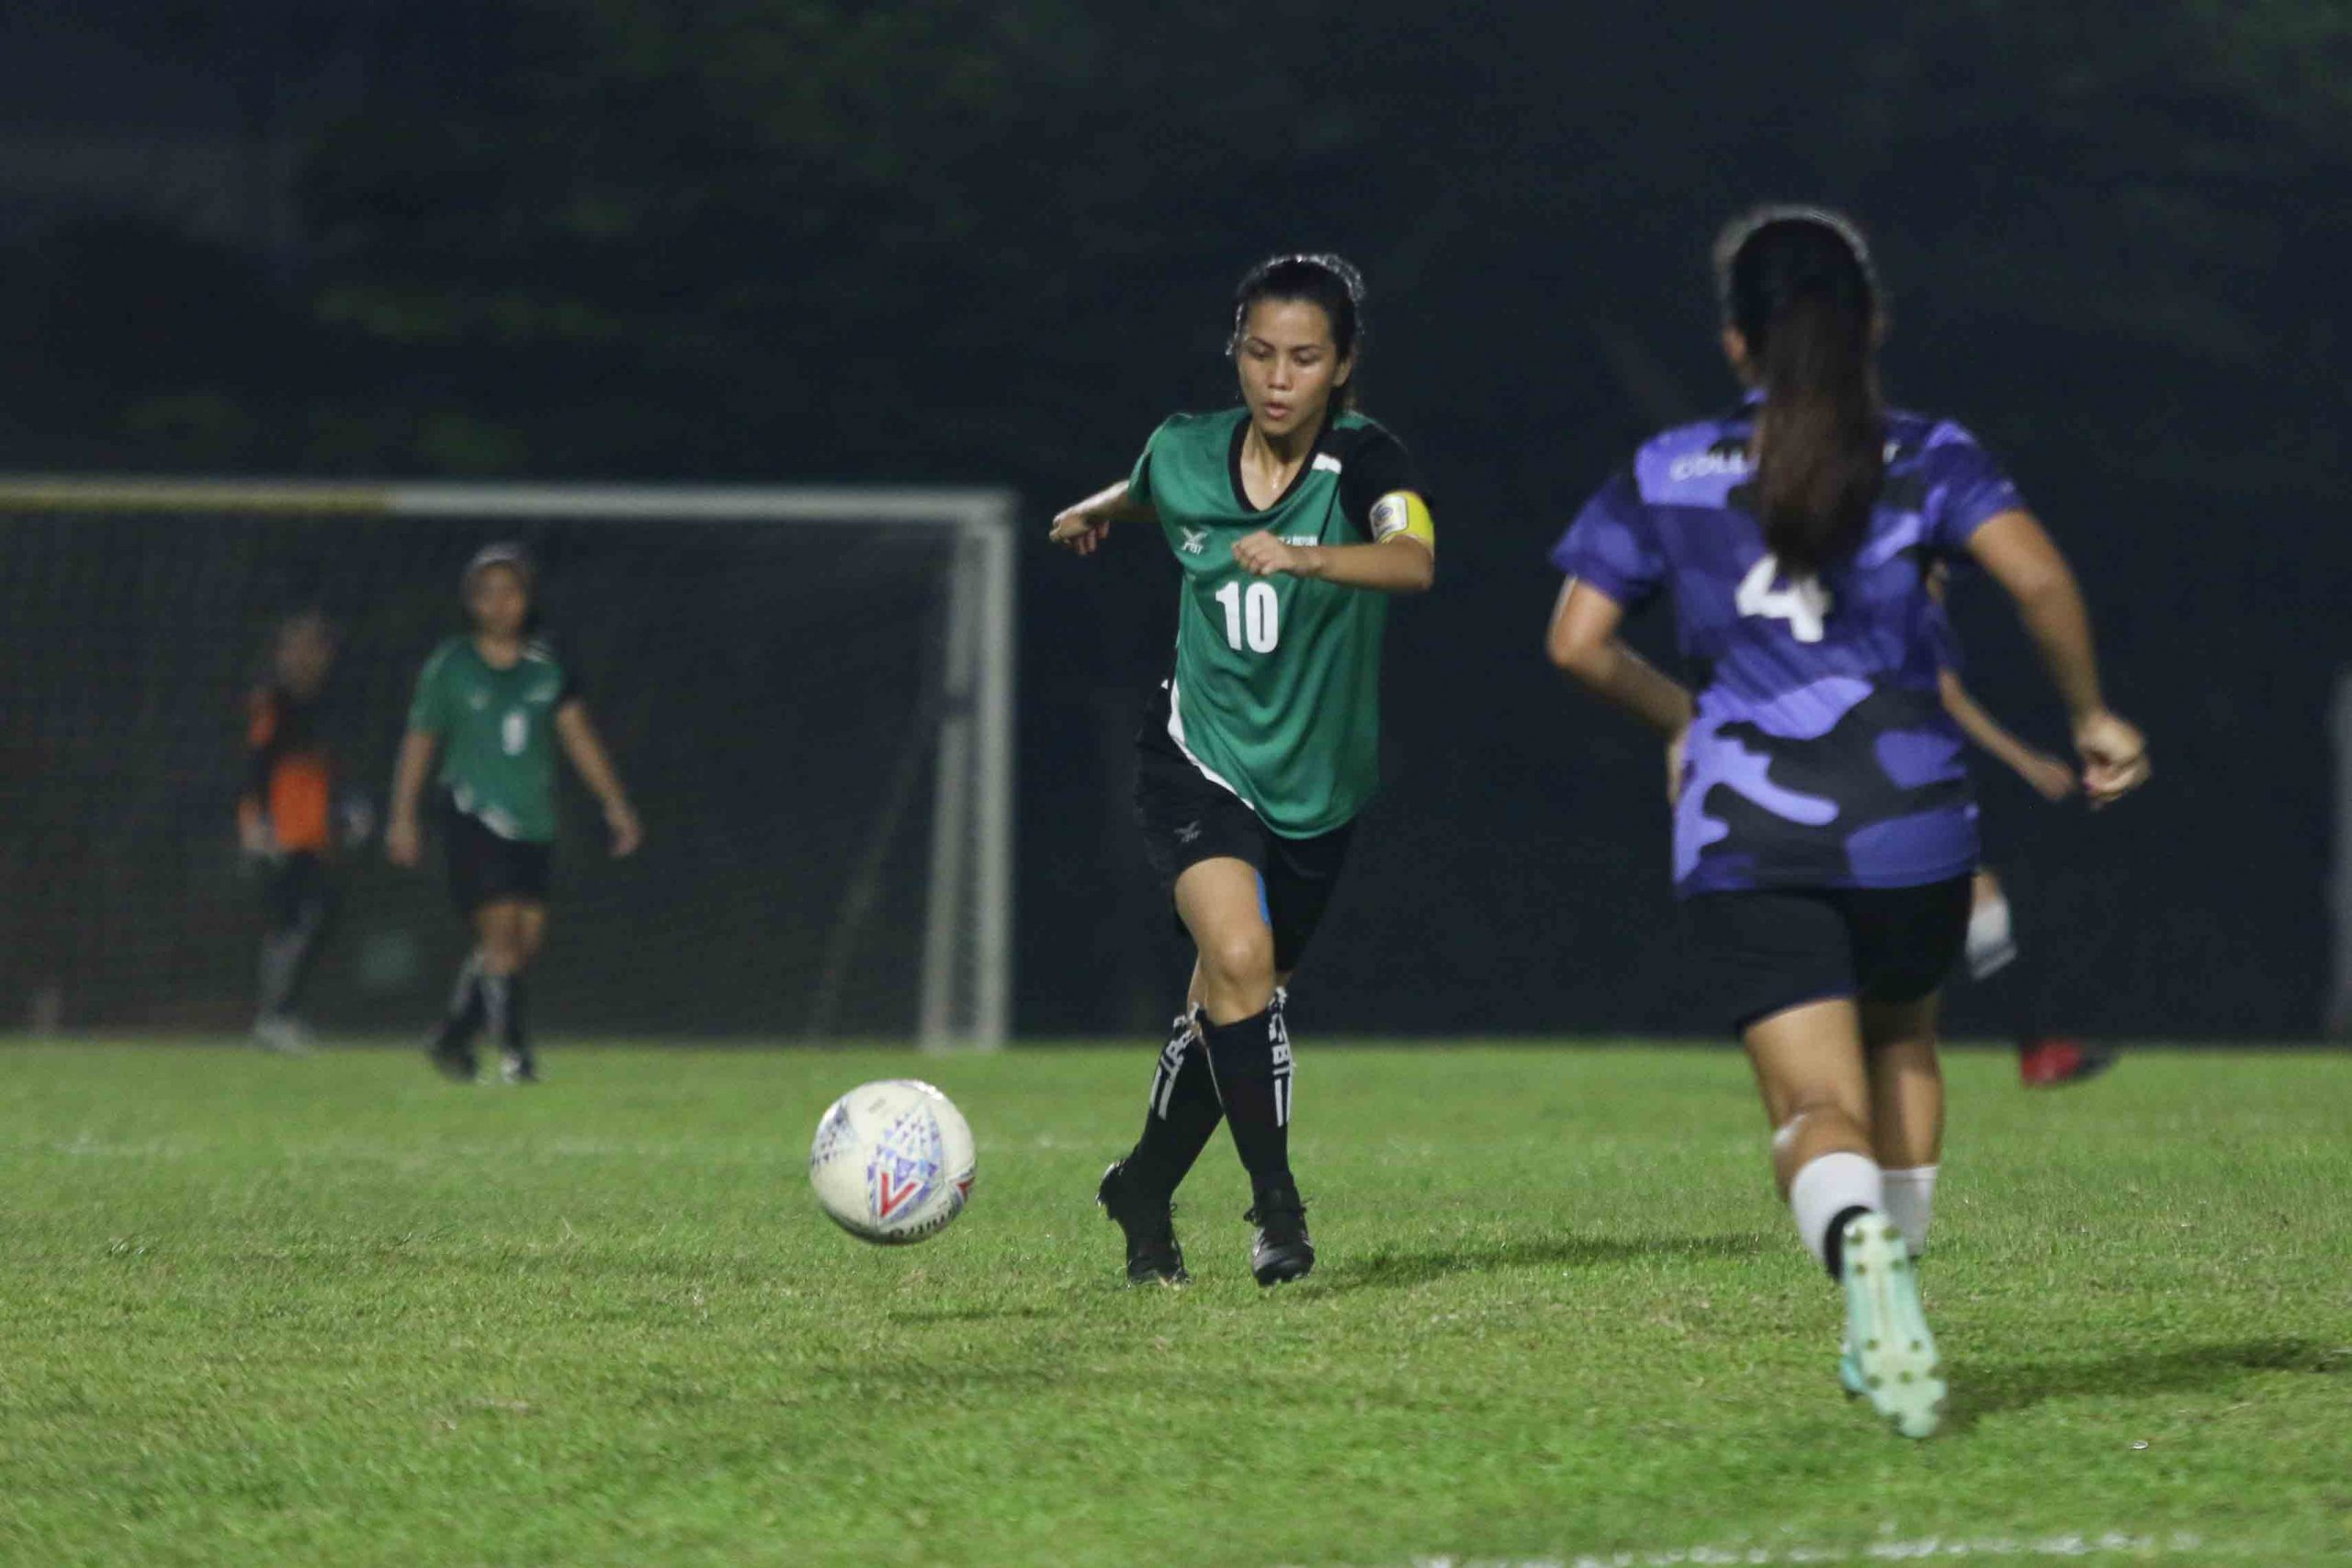 RP's captain Reneelyn Sison (#10) lines up a shot at goal. (Photo 6 © Clara Lau/Red Sports)